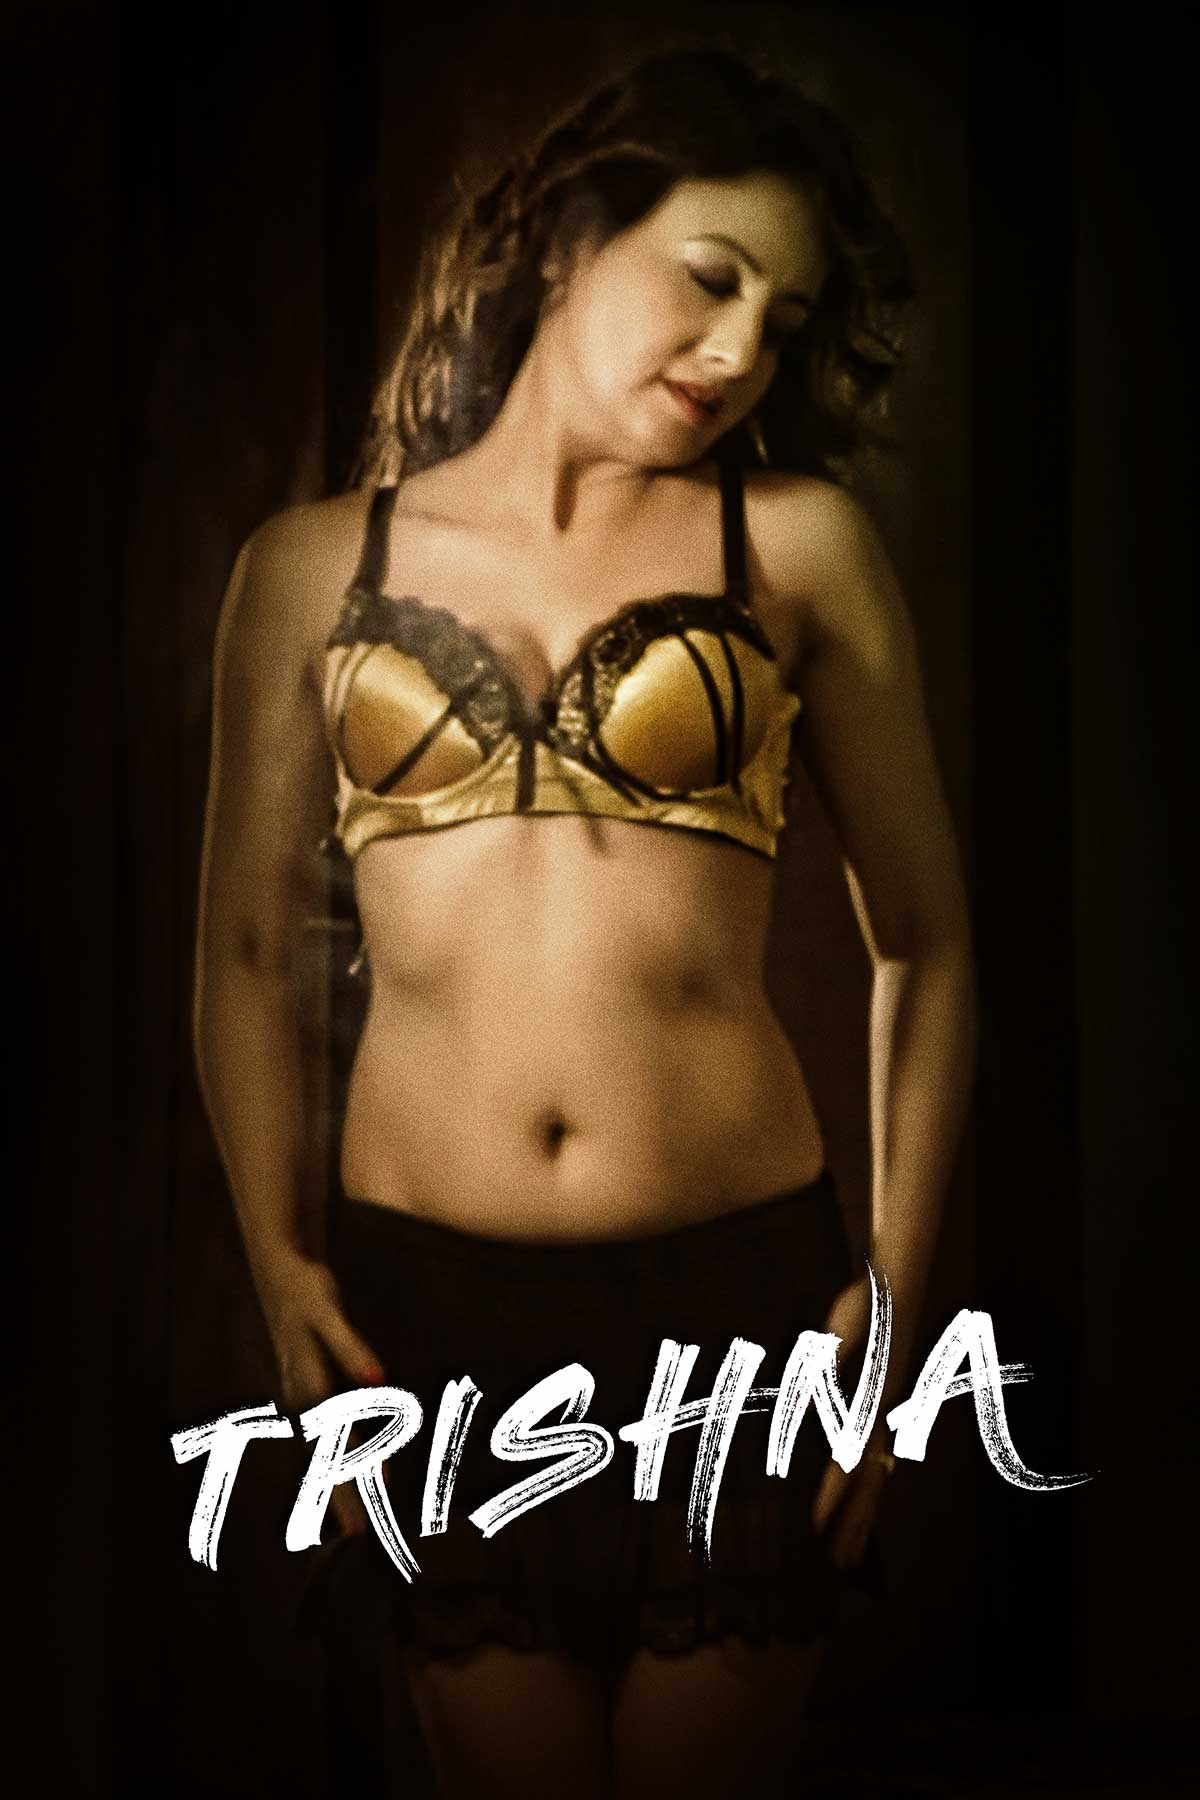 Trishna 2020 S01 Hindi Kooku App Complete Web Series 414MB HDRip Download